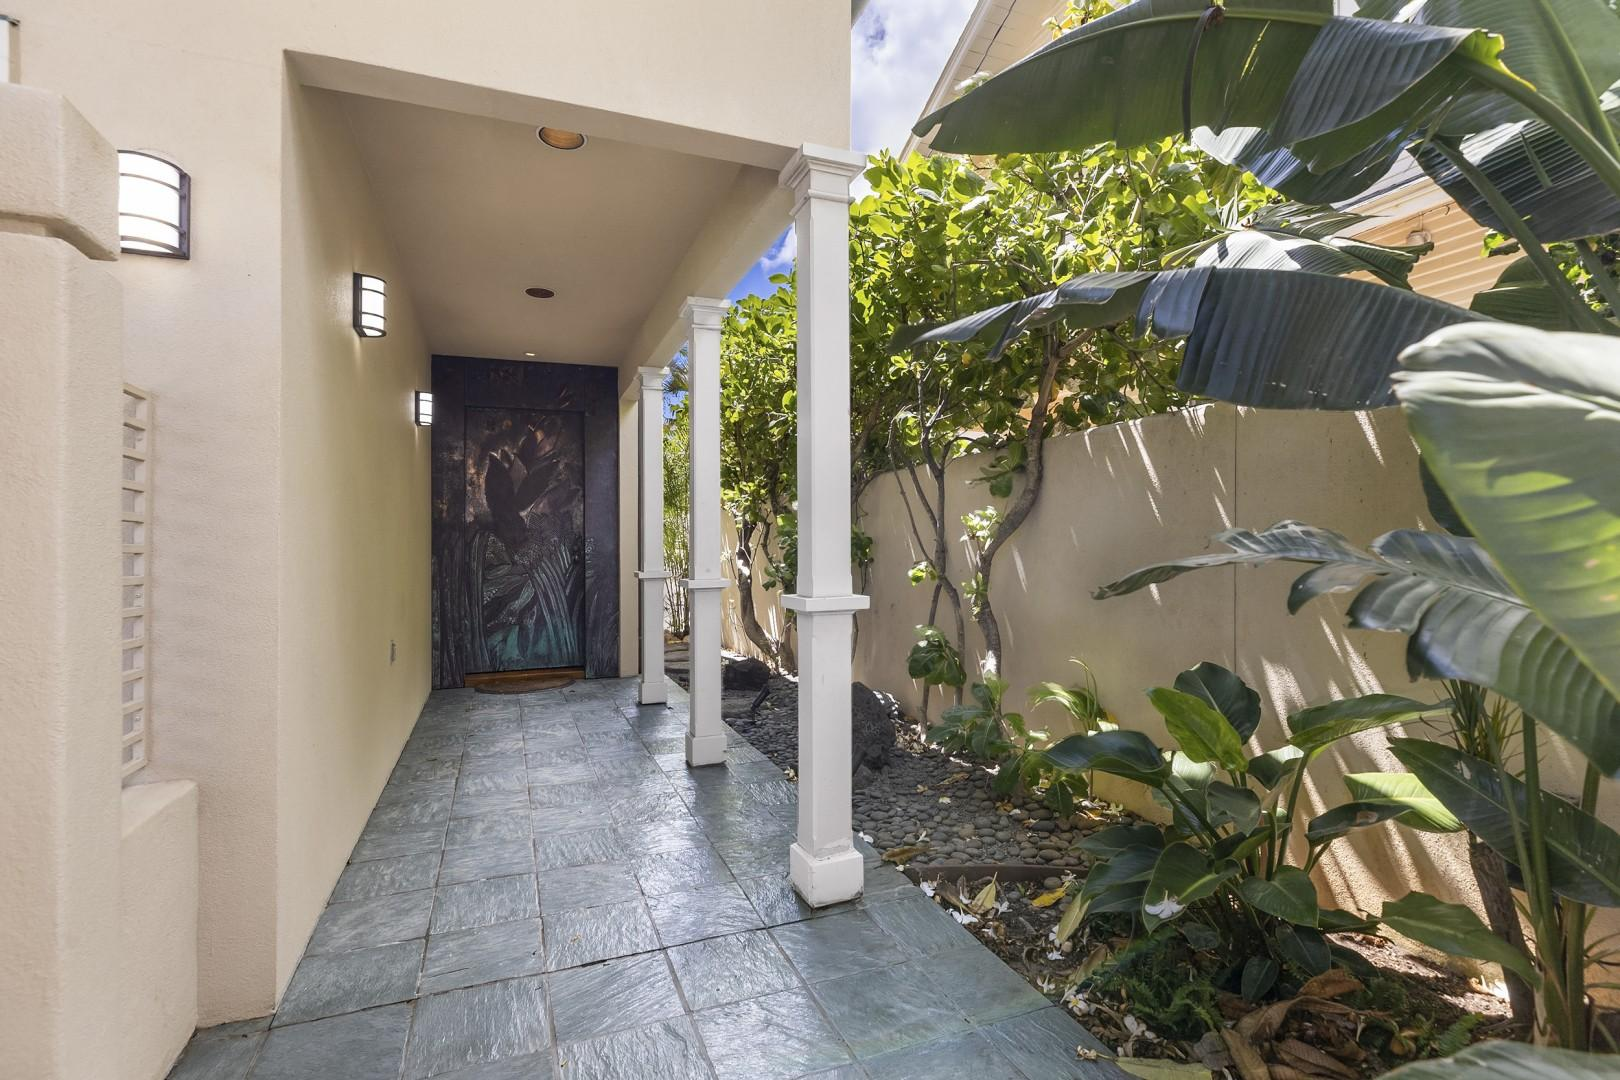 Covered walk way leads to engraved floral entry door.